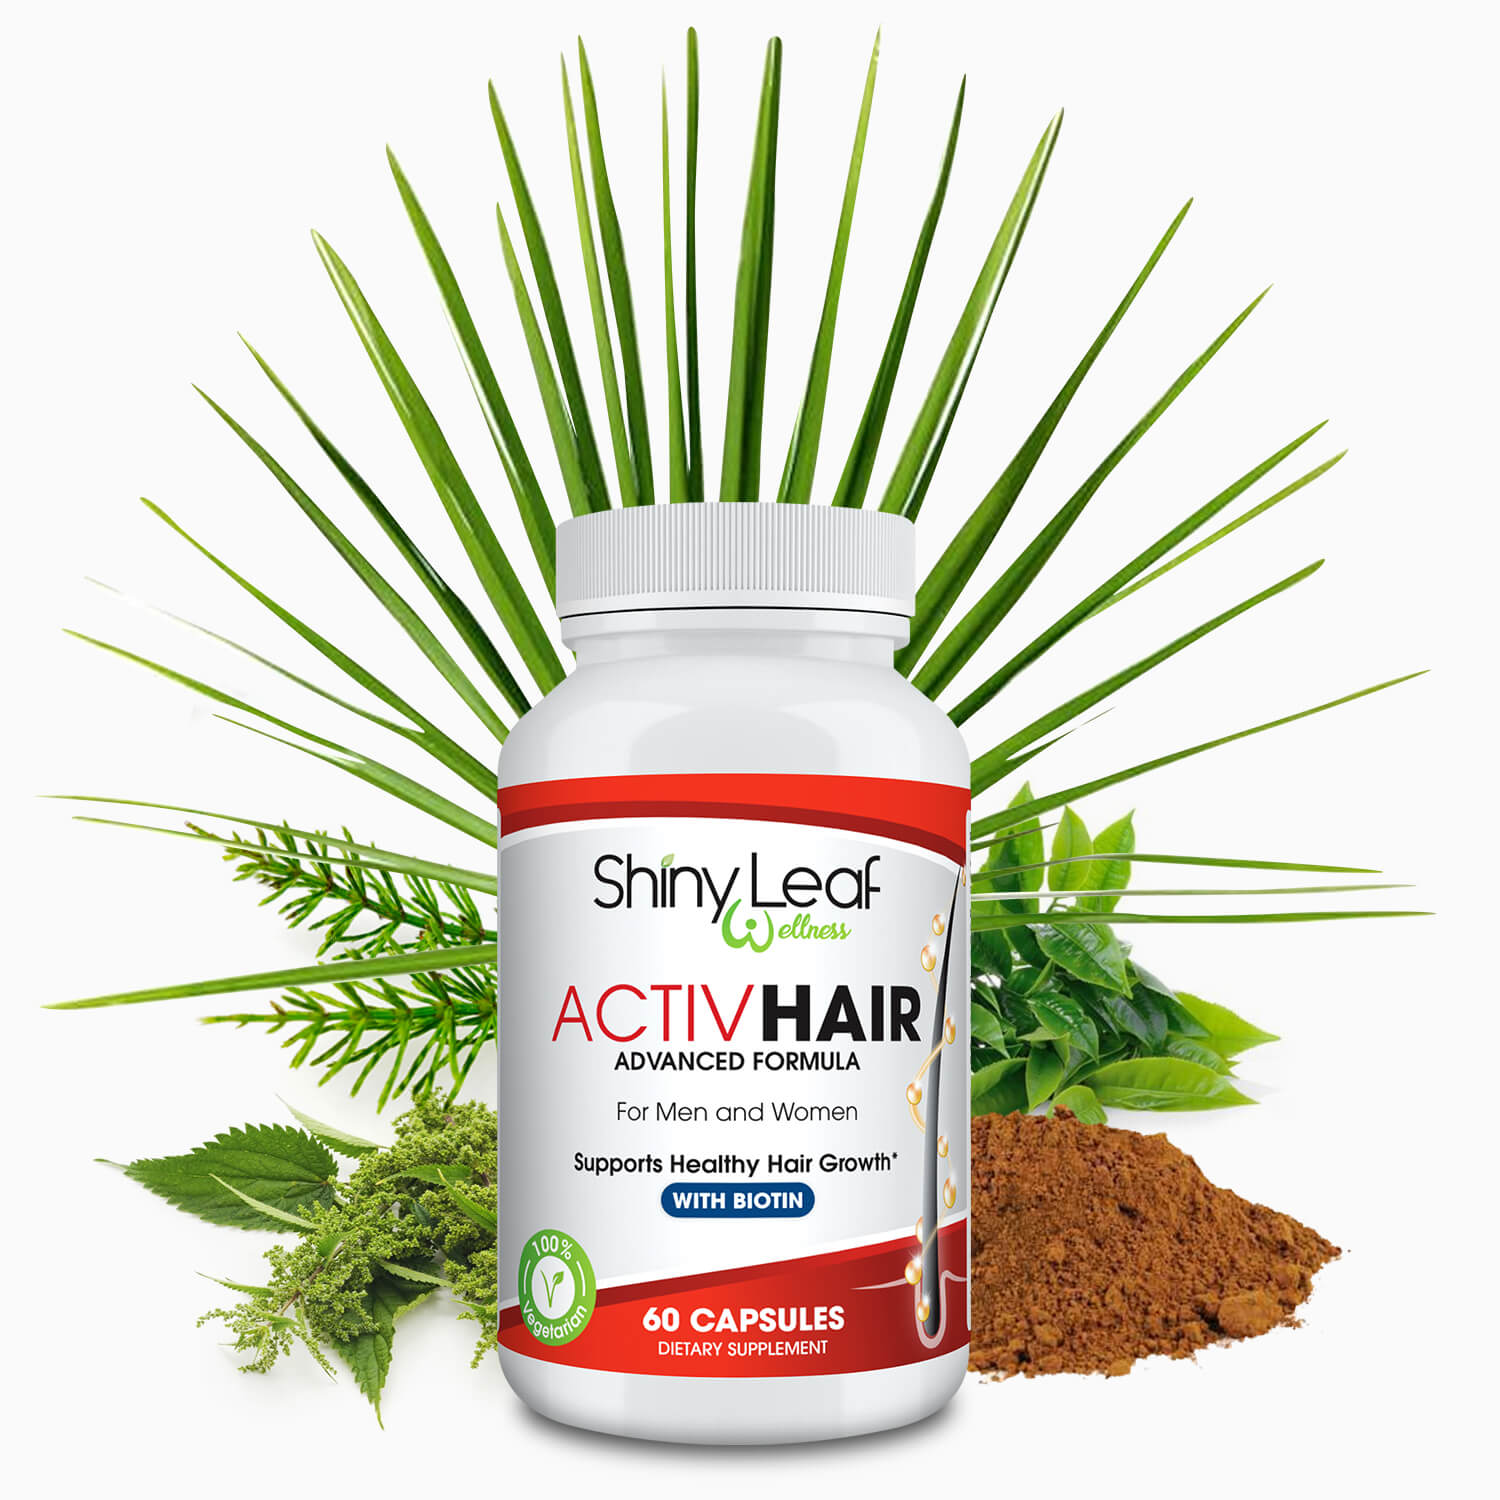 ActivHair Ingredients